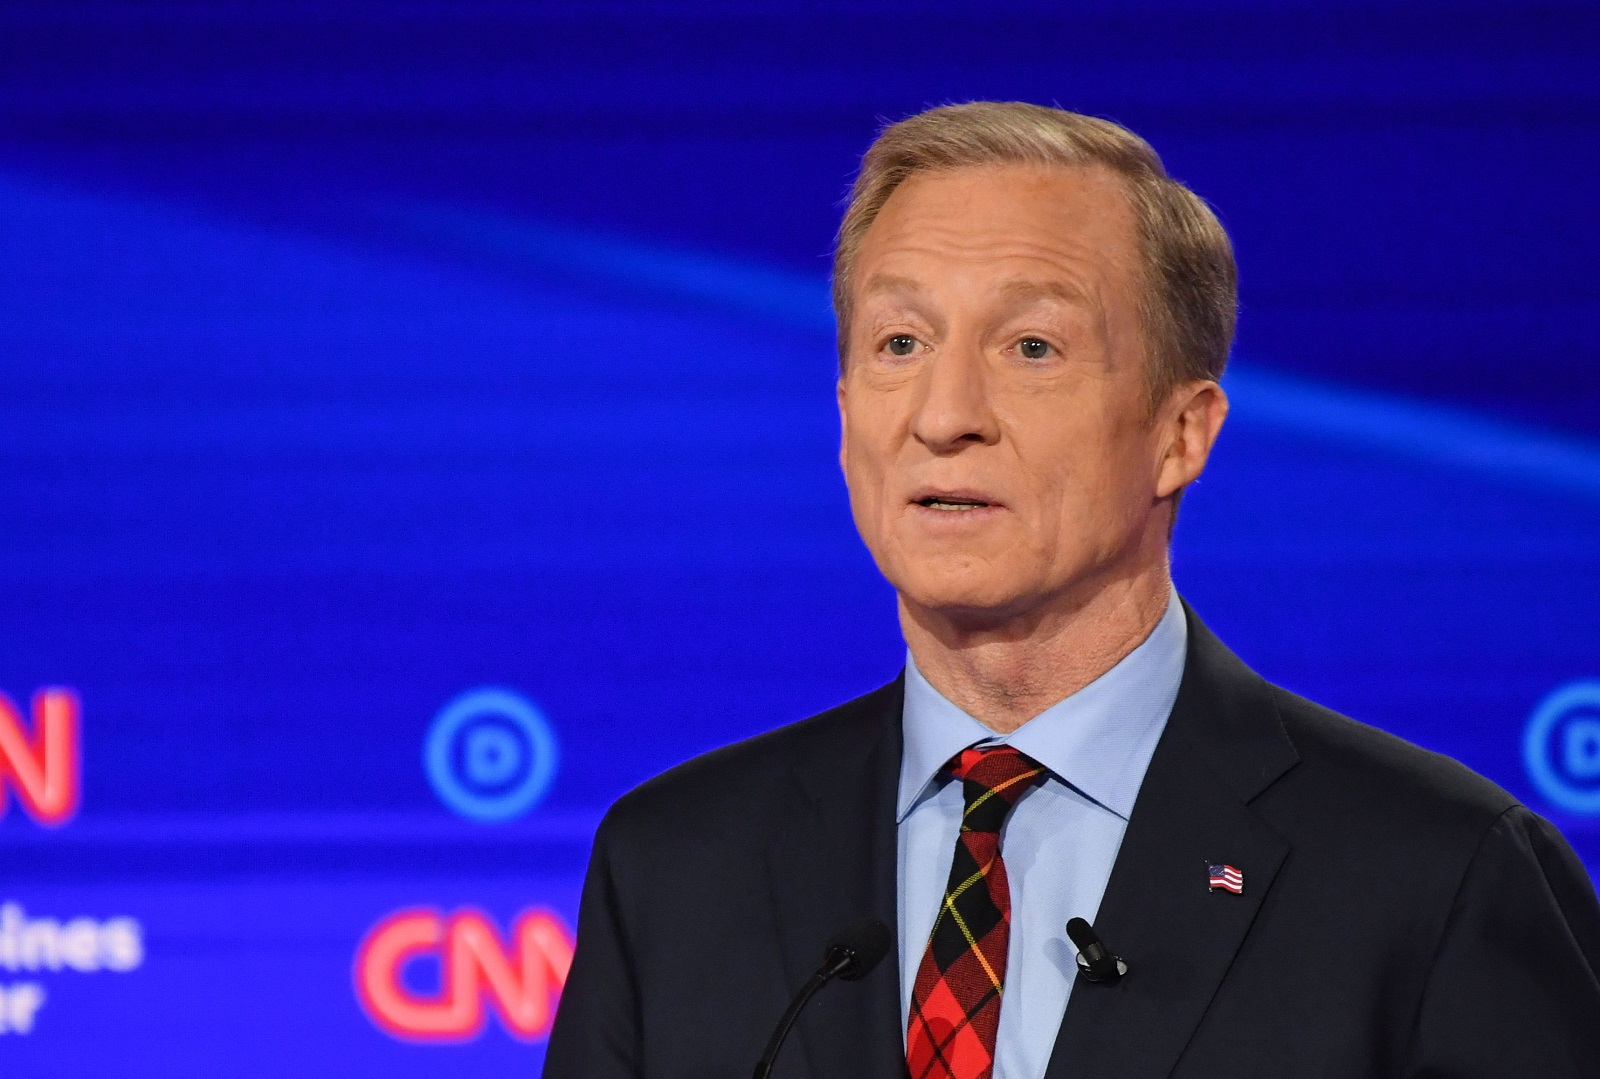 Democratic presidential hopeful billionaire-philanthropist Tom Steyer